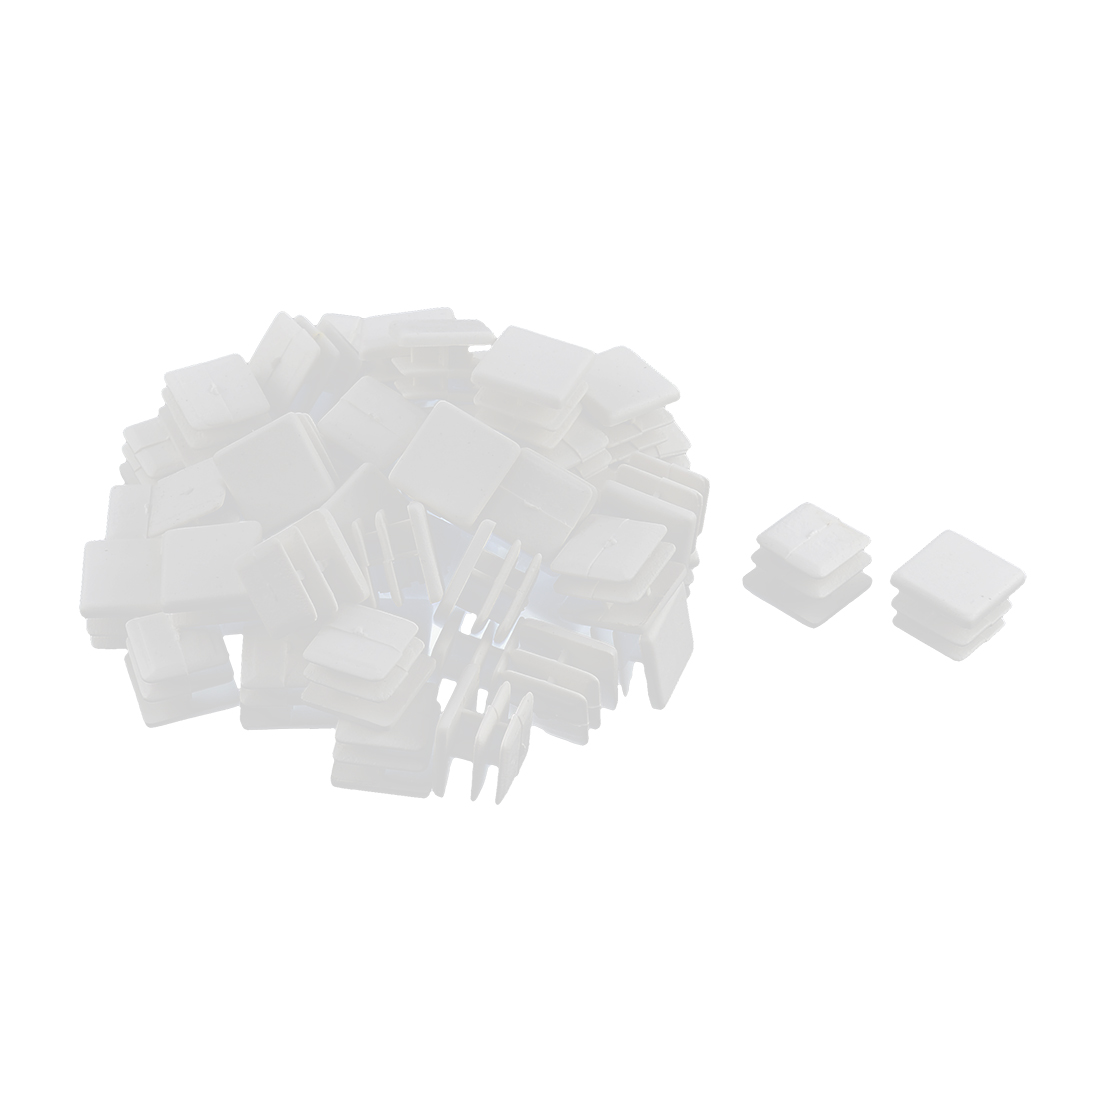 Plastic Square Tube Pipe Inserts End Blanking Caps White 15mmx15mm 50 Pcs